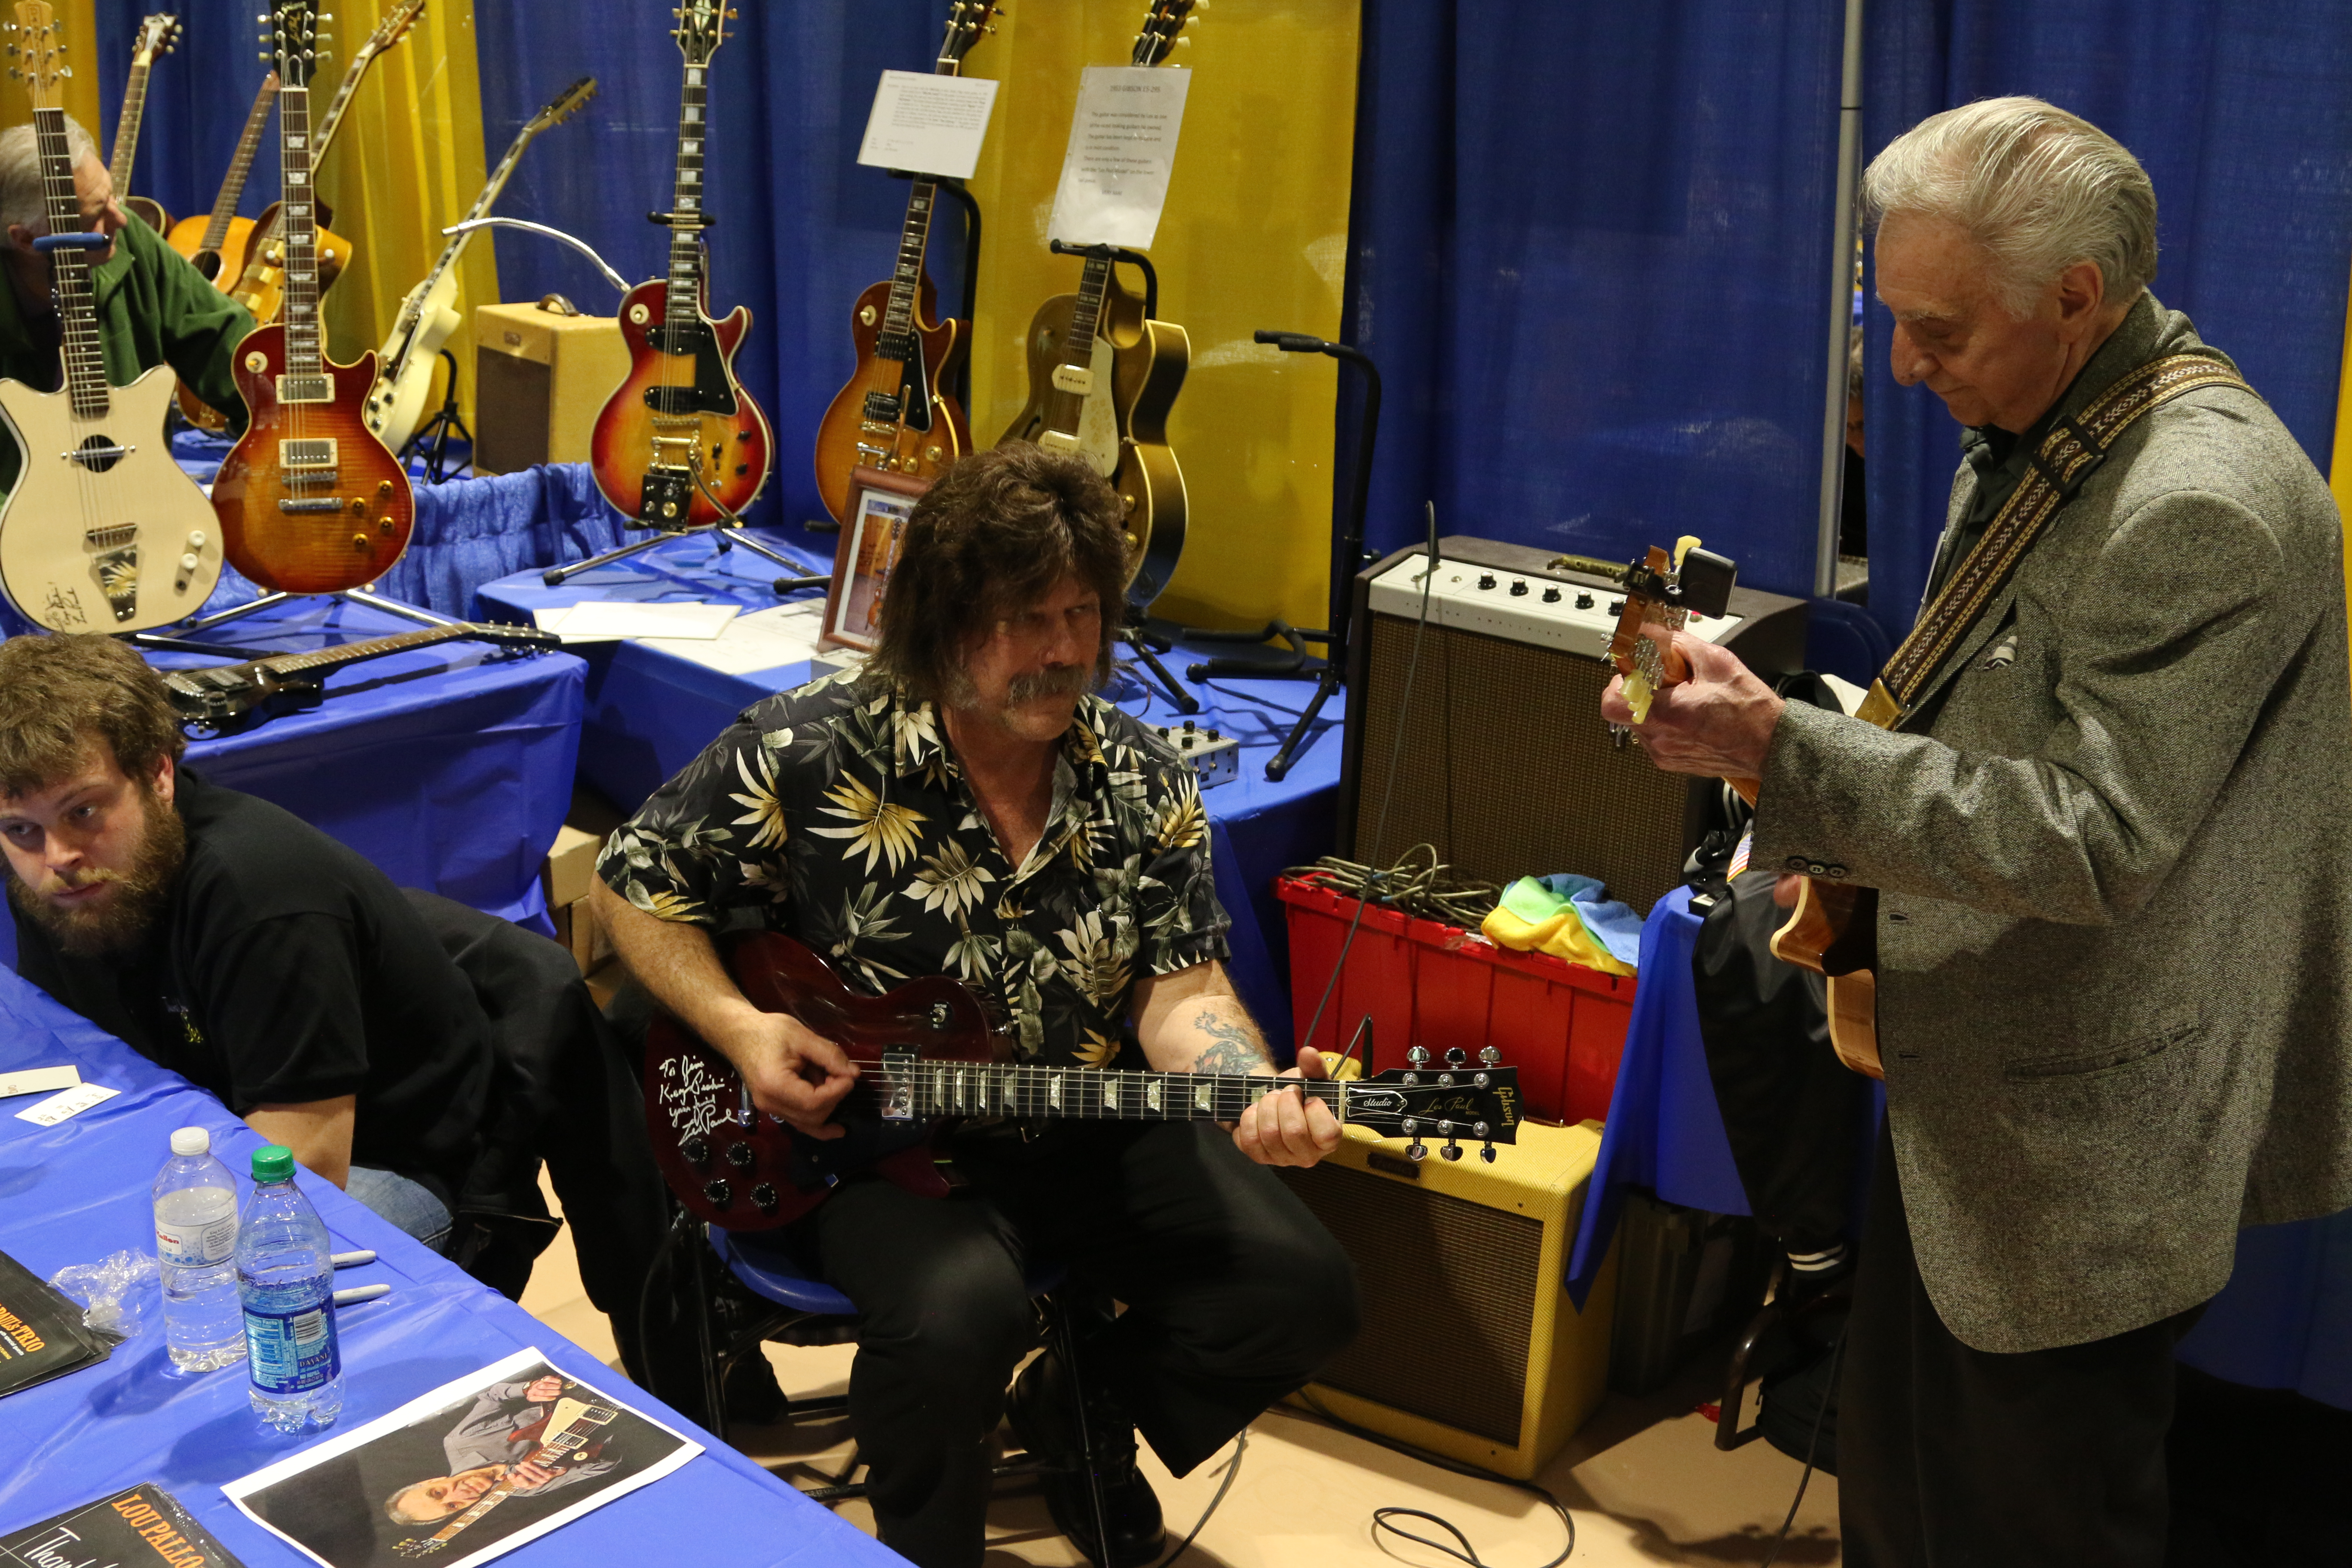 Lou Pallo James with a Vietnam vet at the 4th NY Guitar Expo this past April.